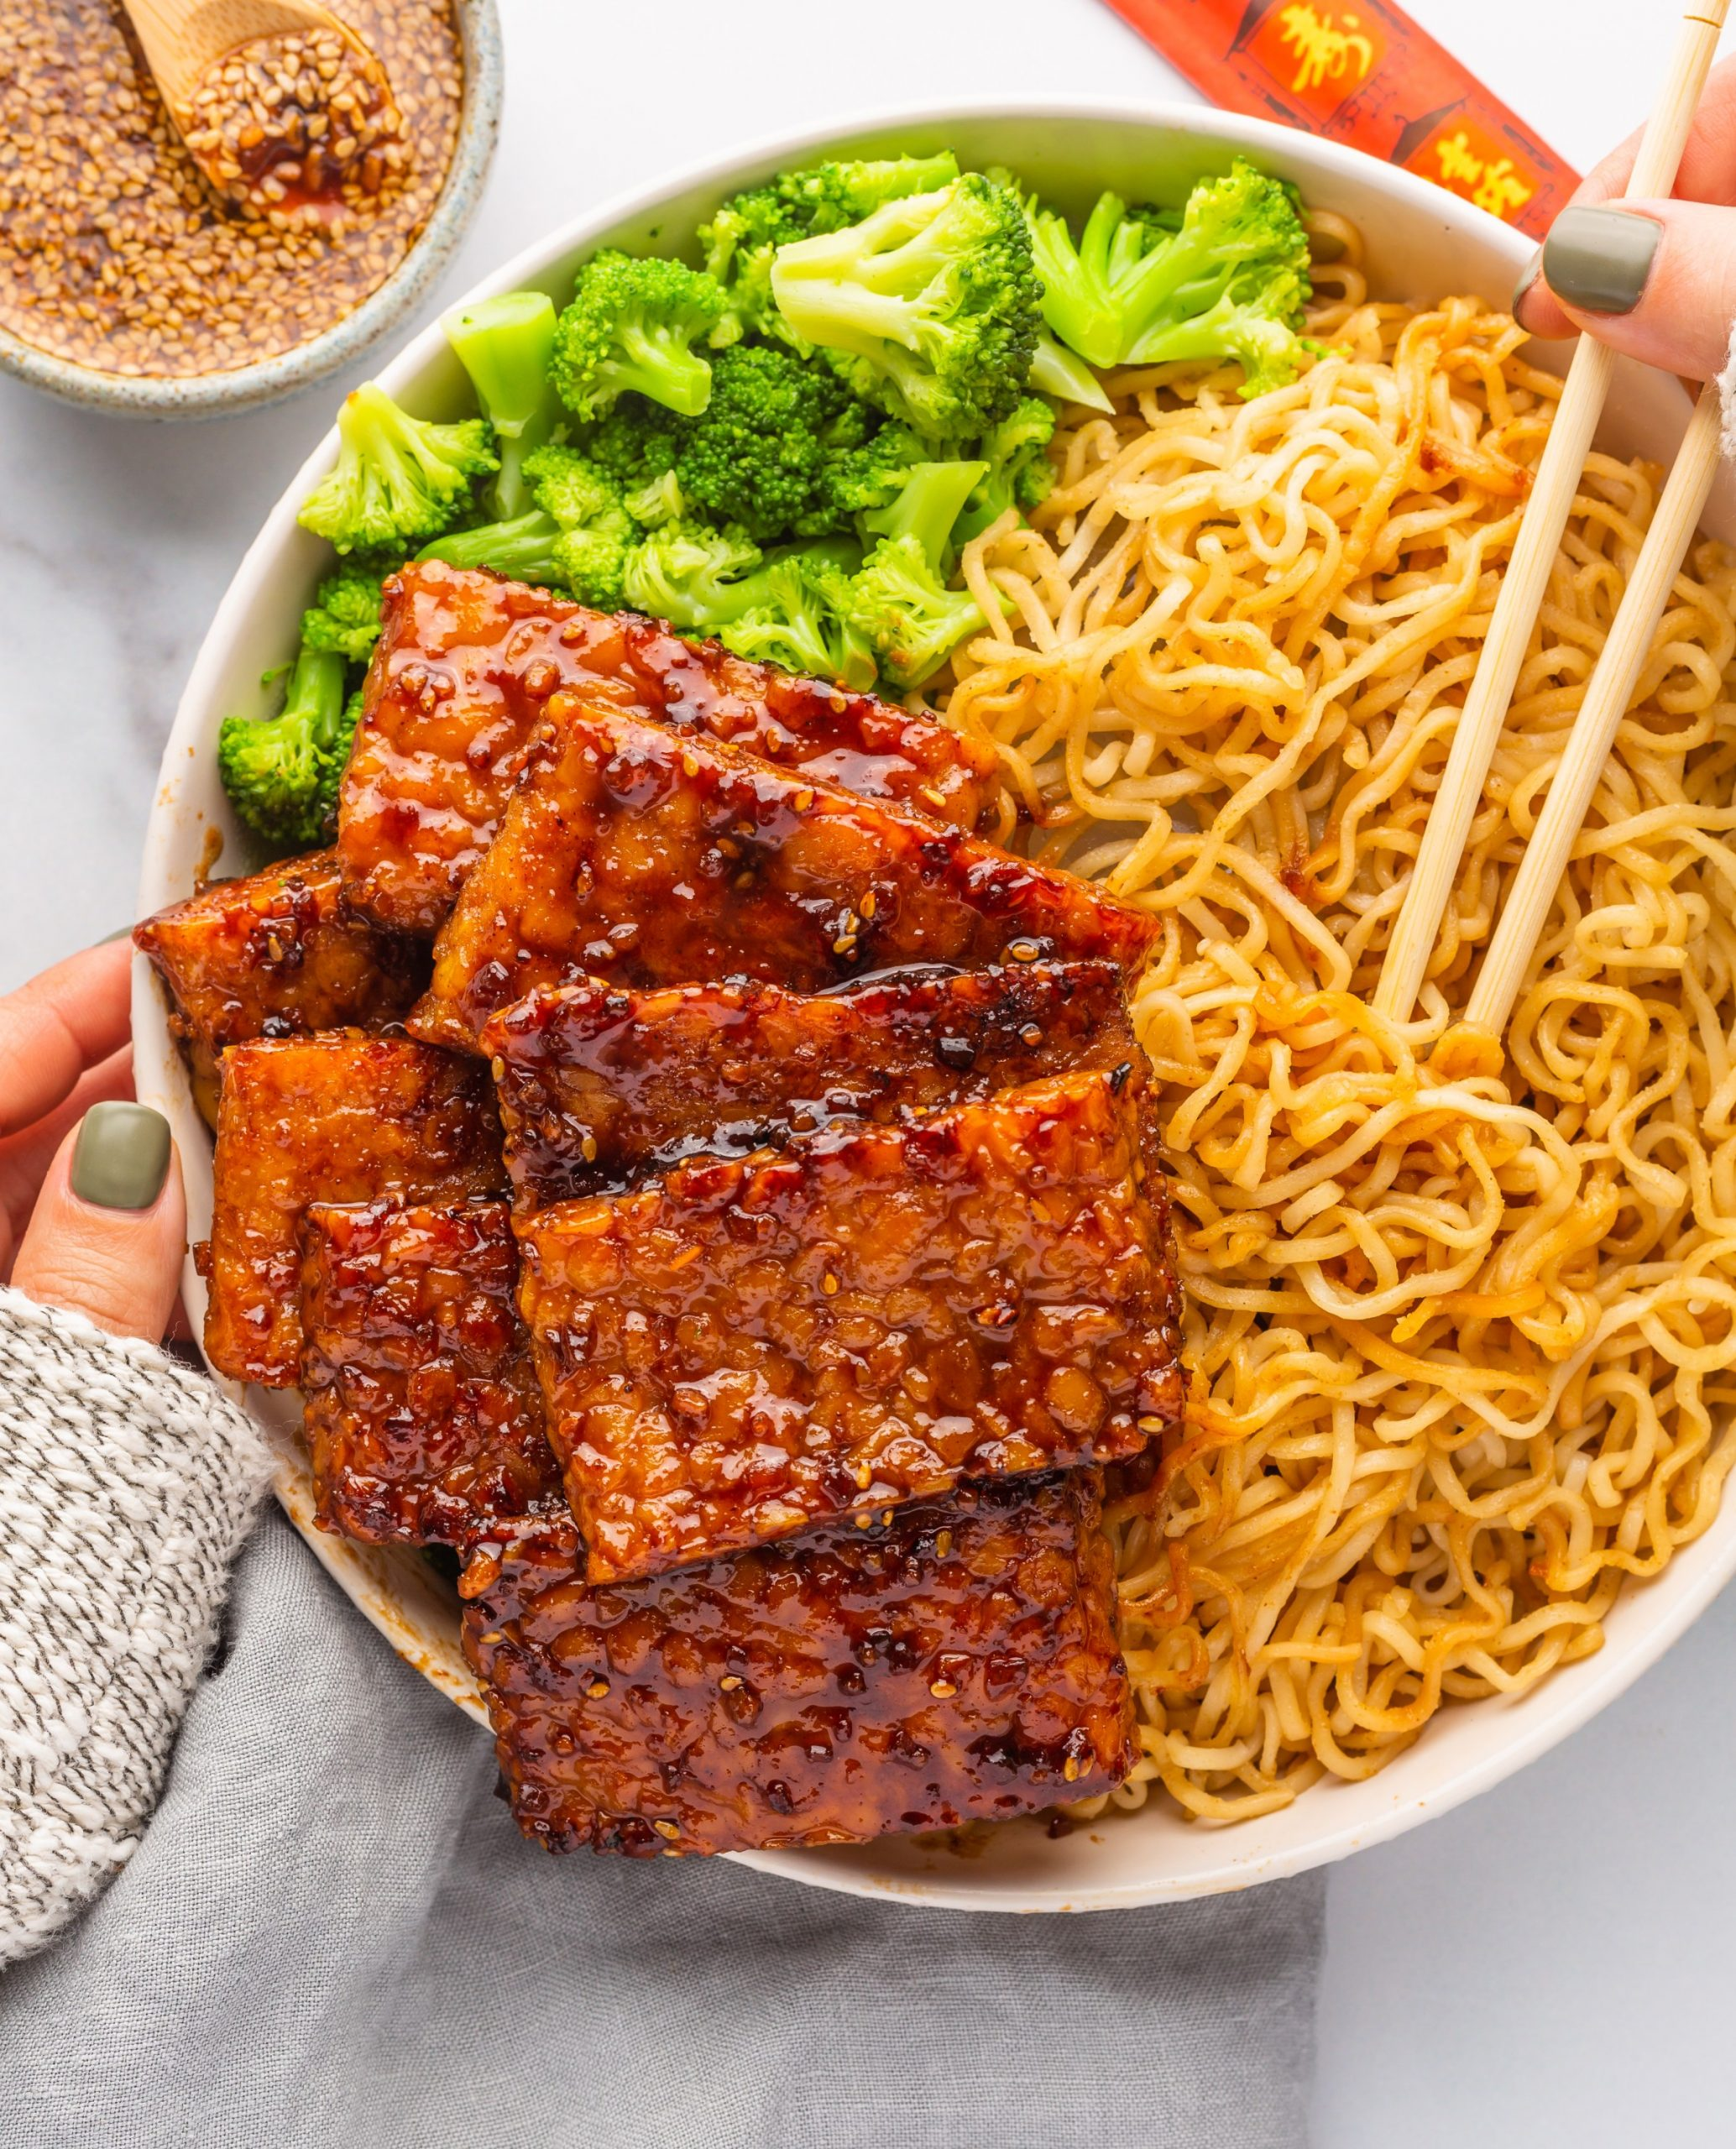 Glazed tempeh on a bed of noodles with broccoli in a bowl